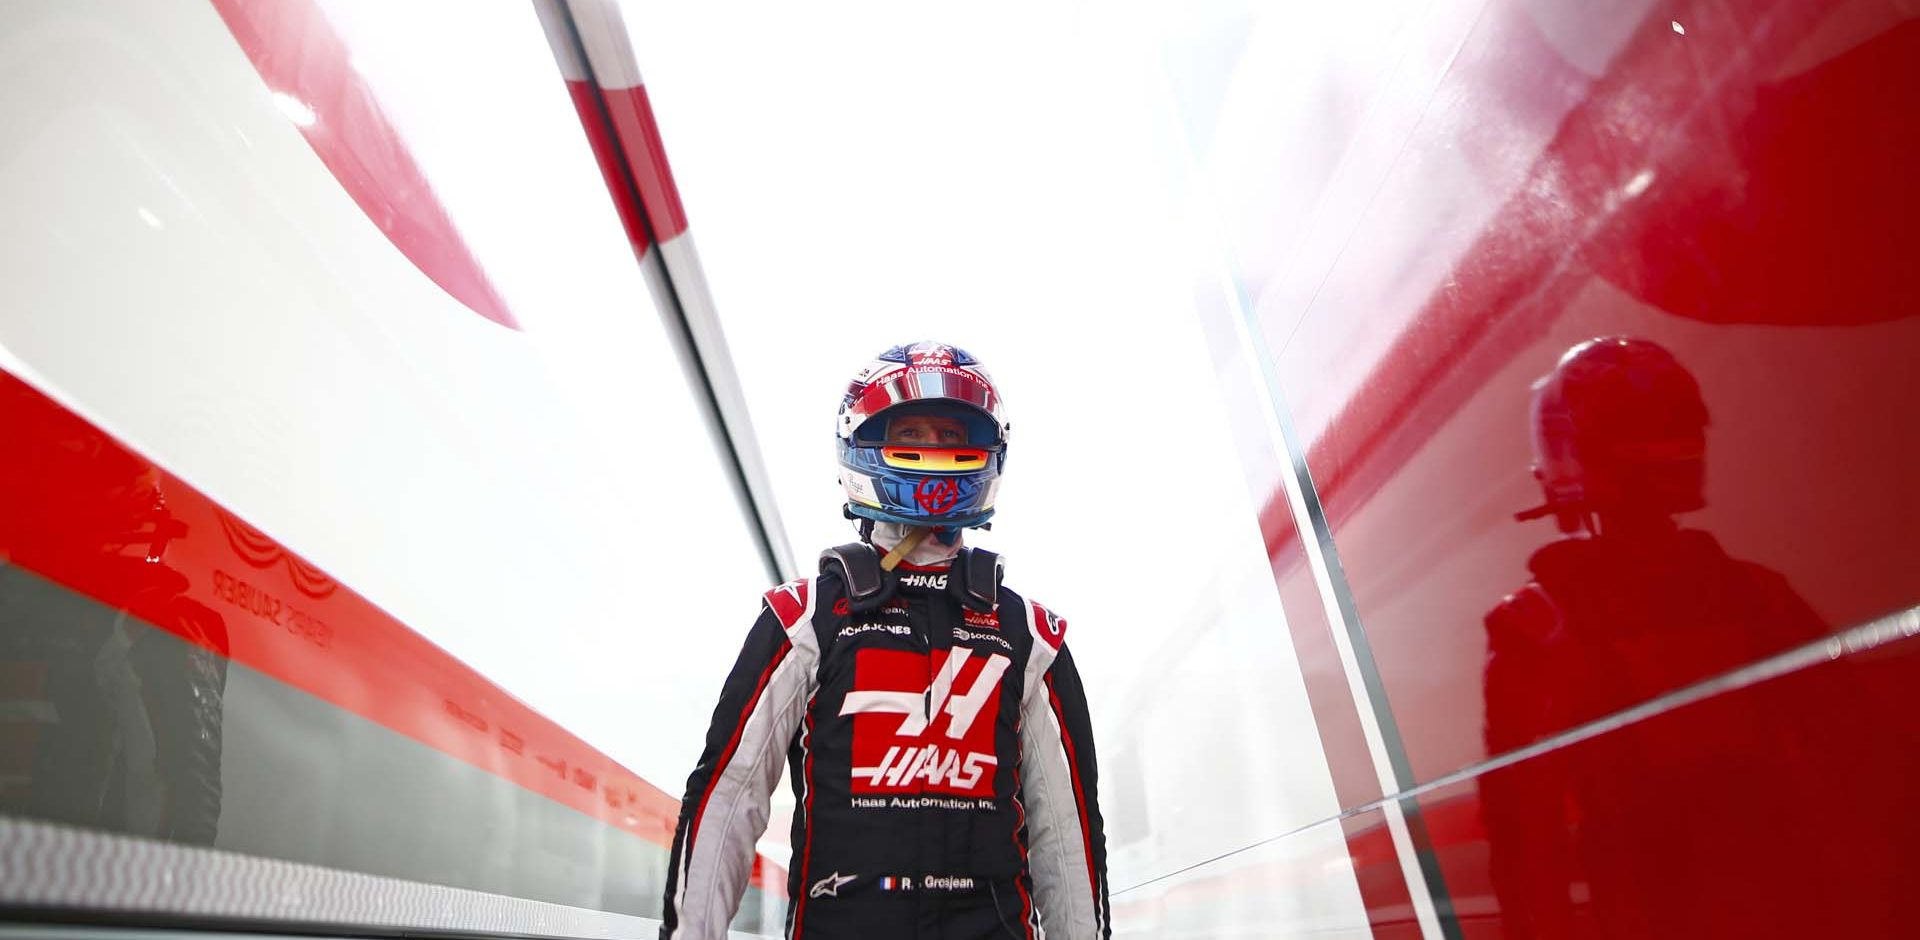 MUGELLO CIRCUIT, ITALY - SEPTEMBER 11: Romain Grosjean, Haas F1 during the Tuscany GP at Mugello Circuit on Friday September 11, 2020, Italy. (Photo by Andy Hone / LAT Images)